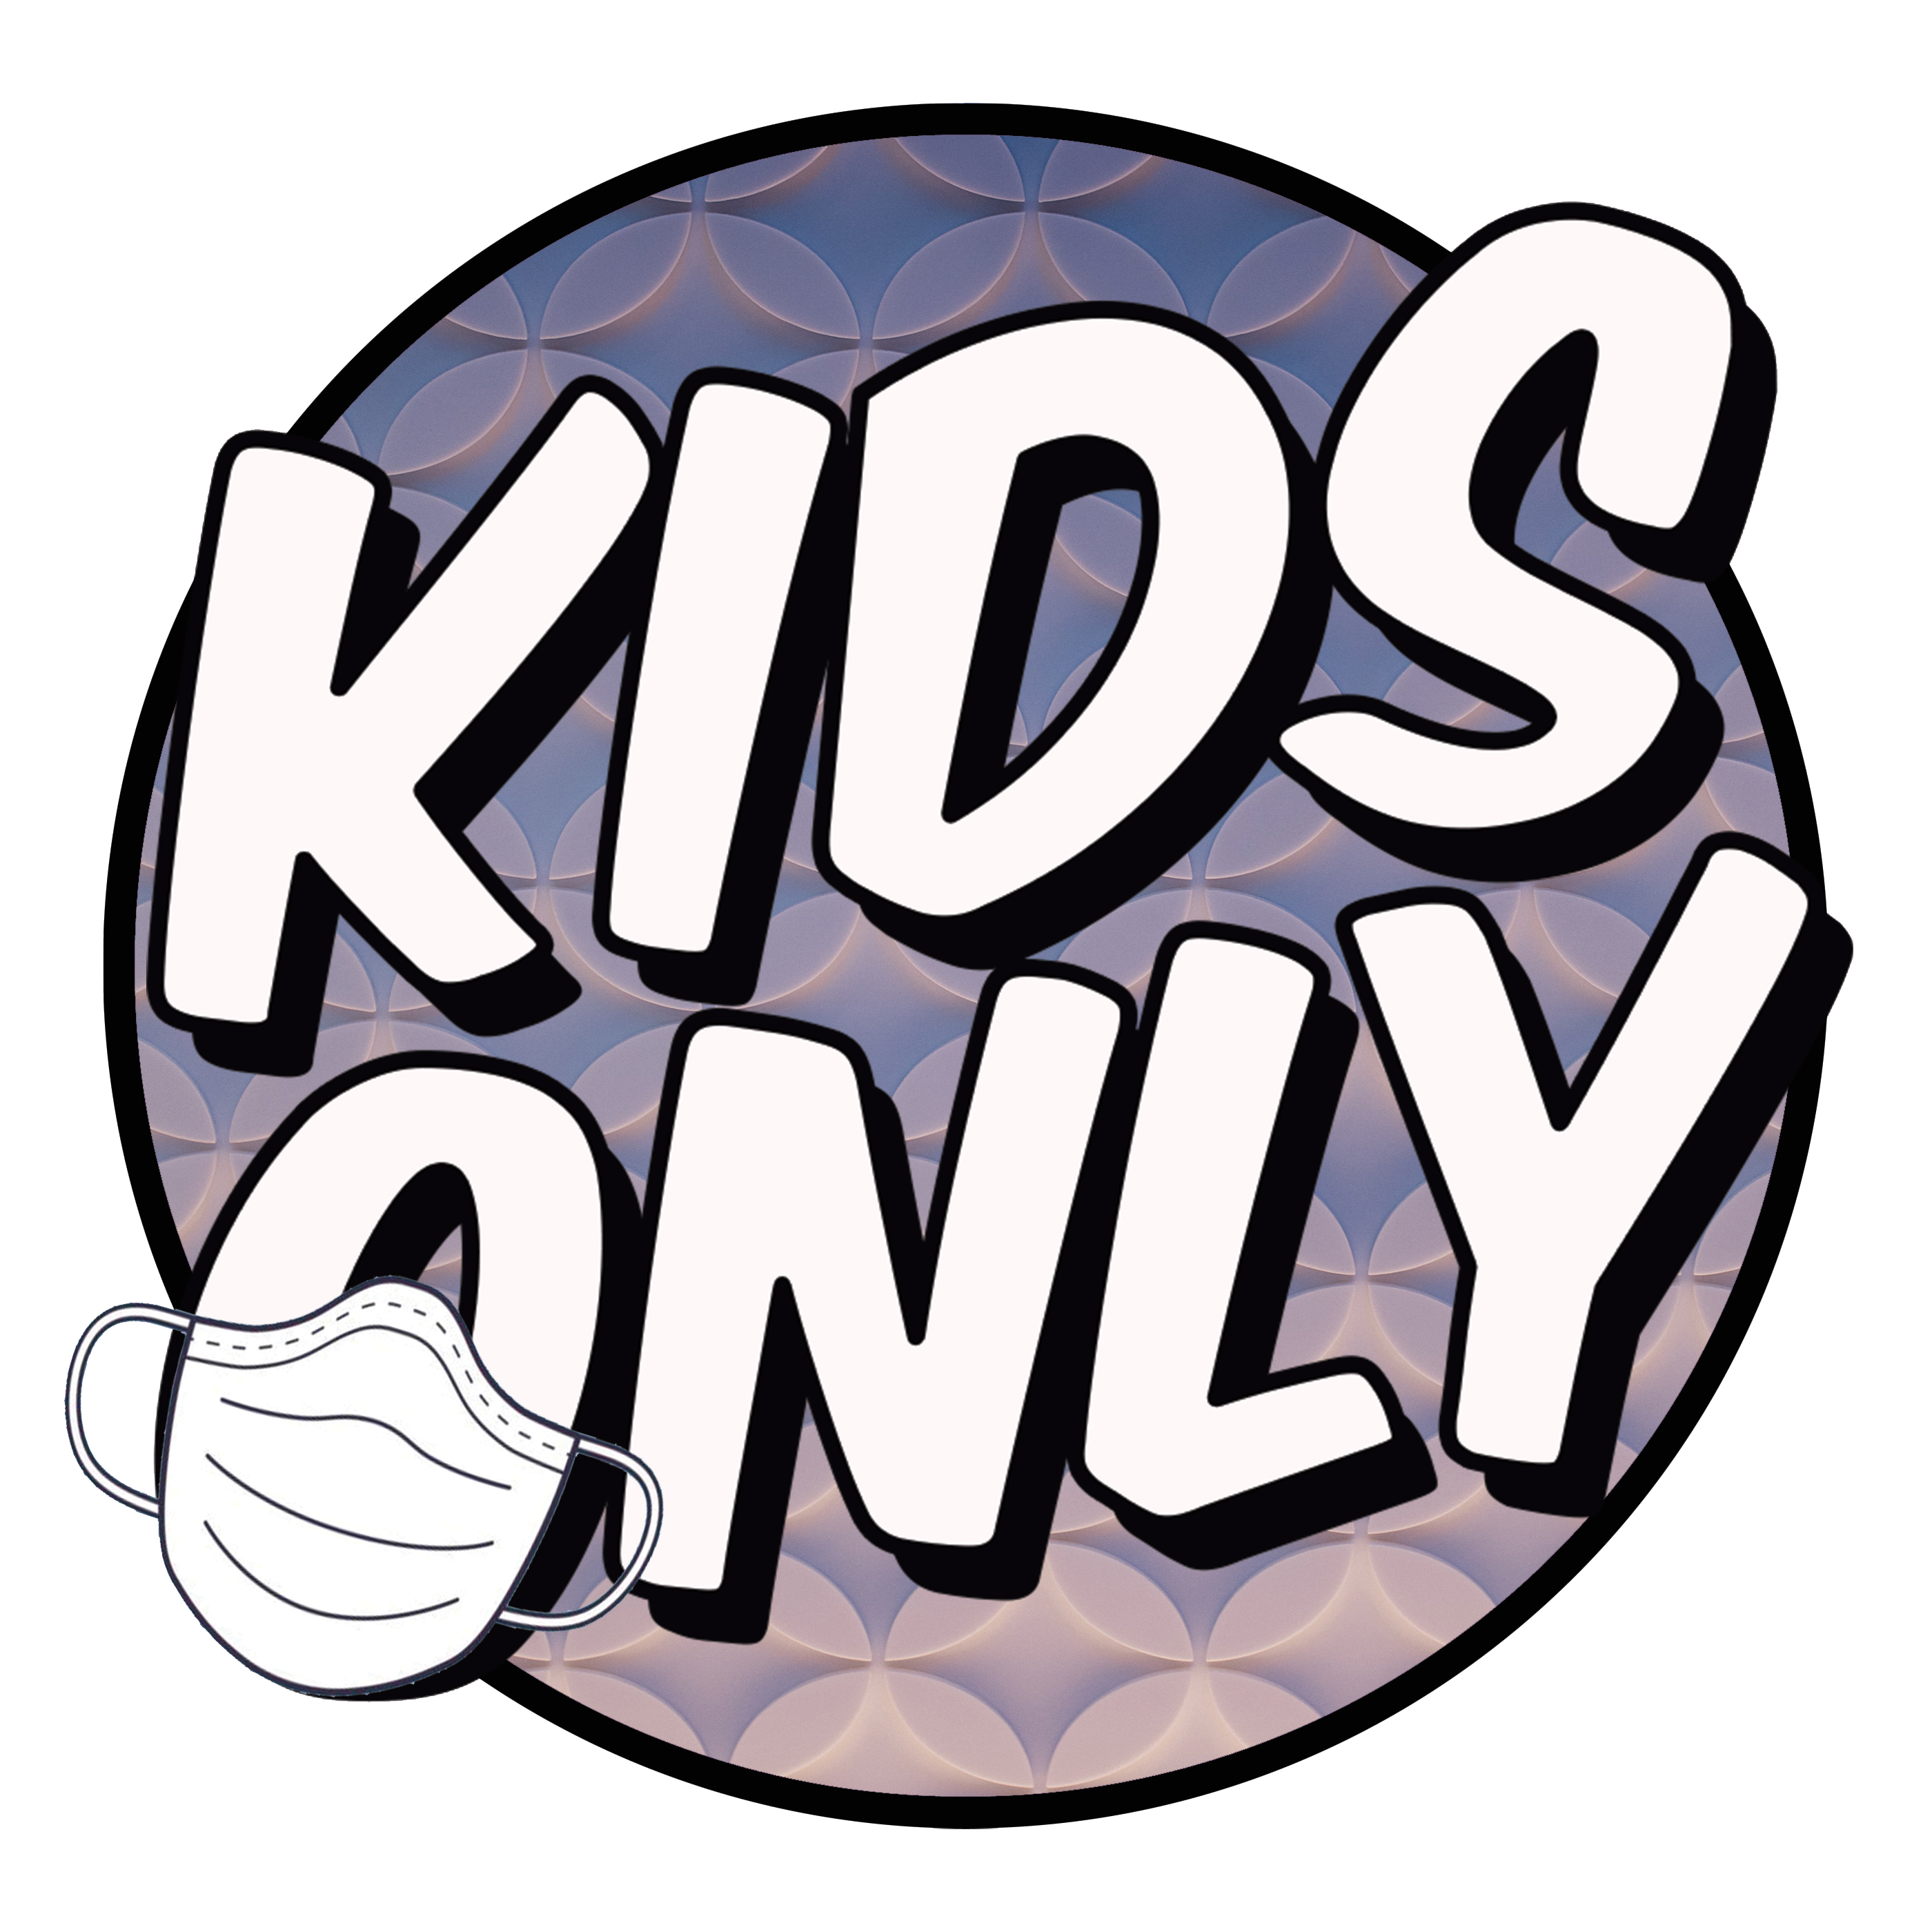 A KIDS ONLY EARLY LEARNING CENTER INC. 4